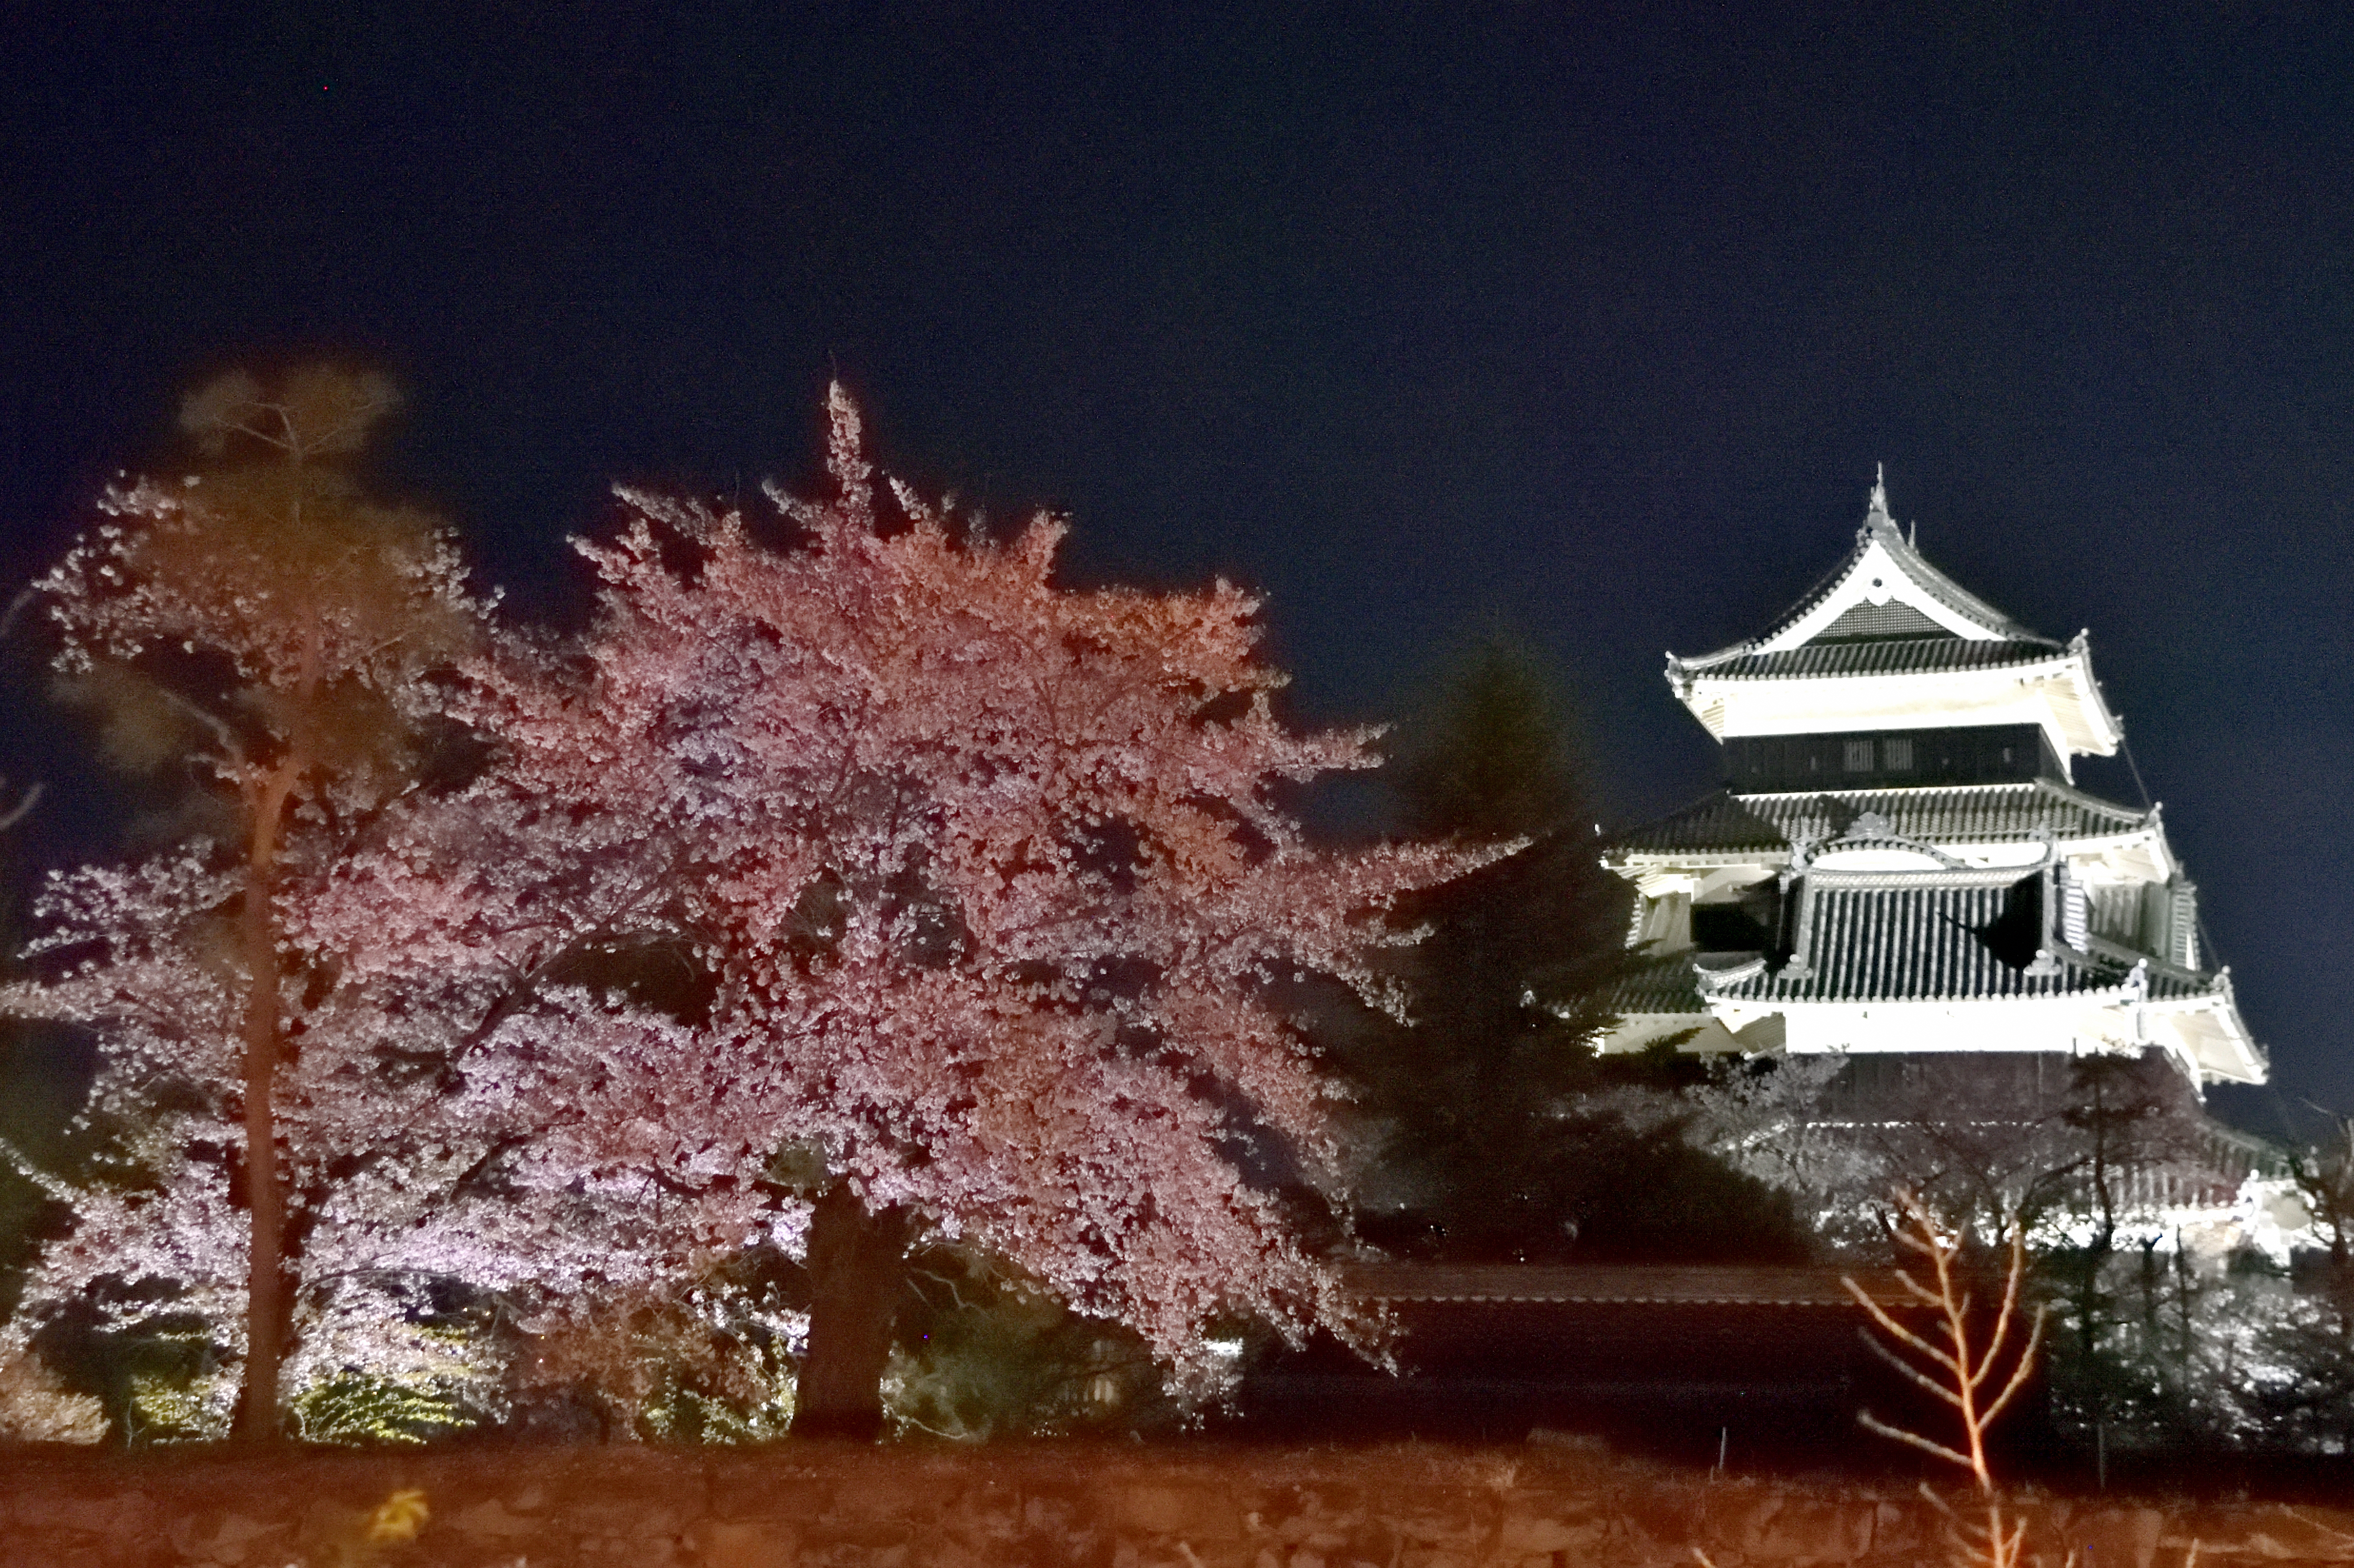 Cherry tree and Matsumoto castle lighted up